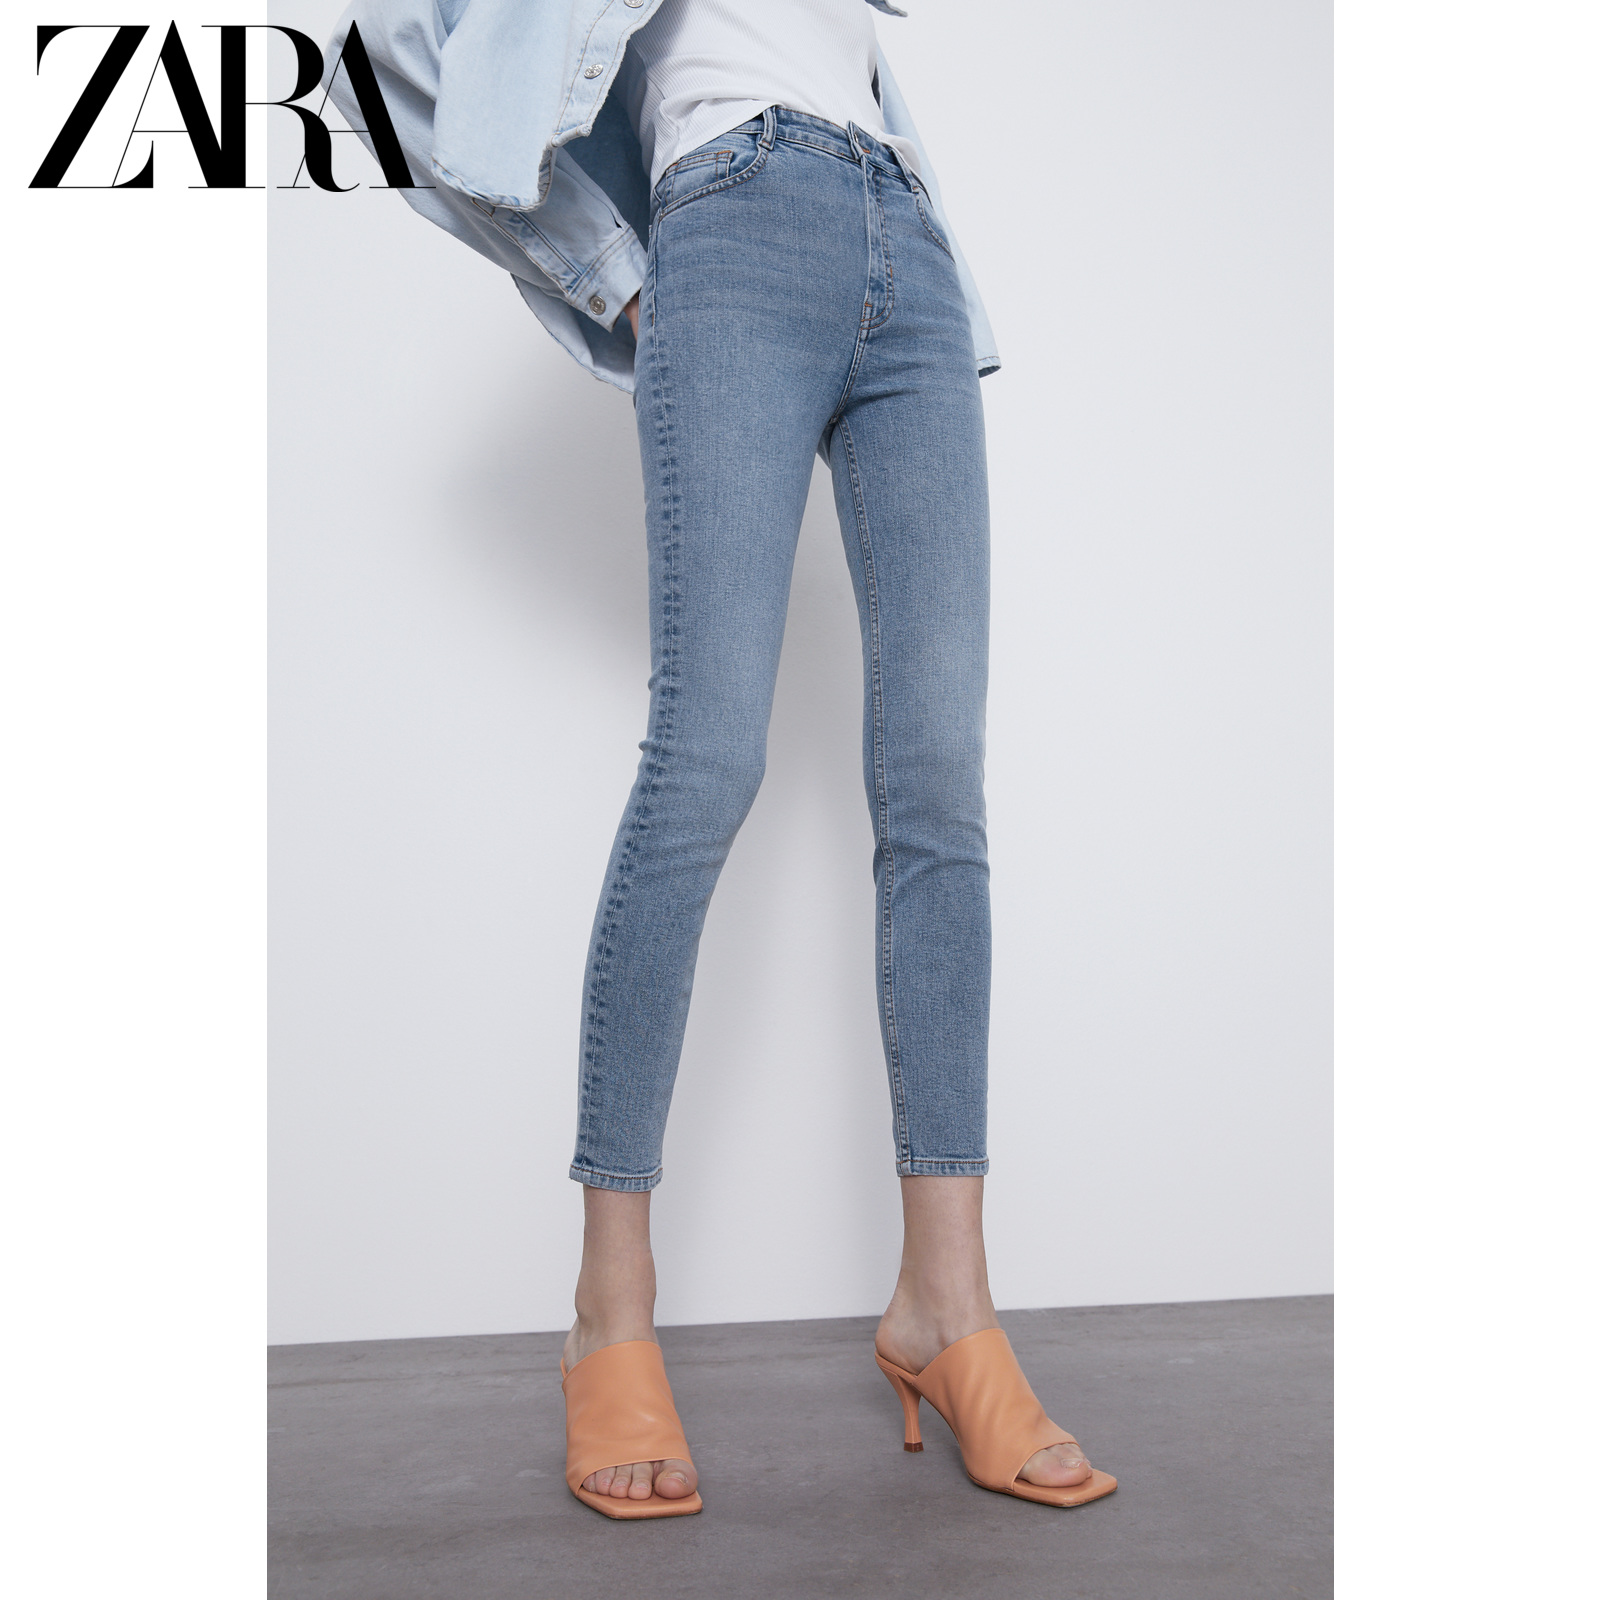 Zara new TRF women's Retro skinny high waist jeans 03643010485